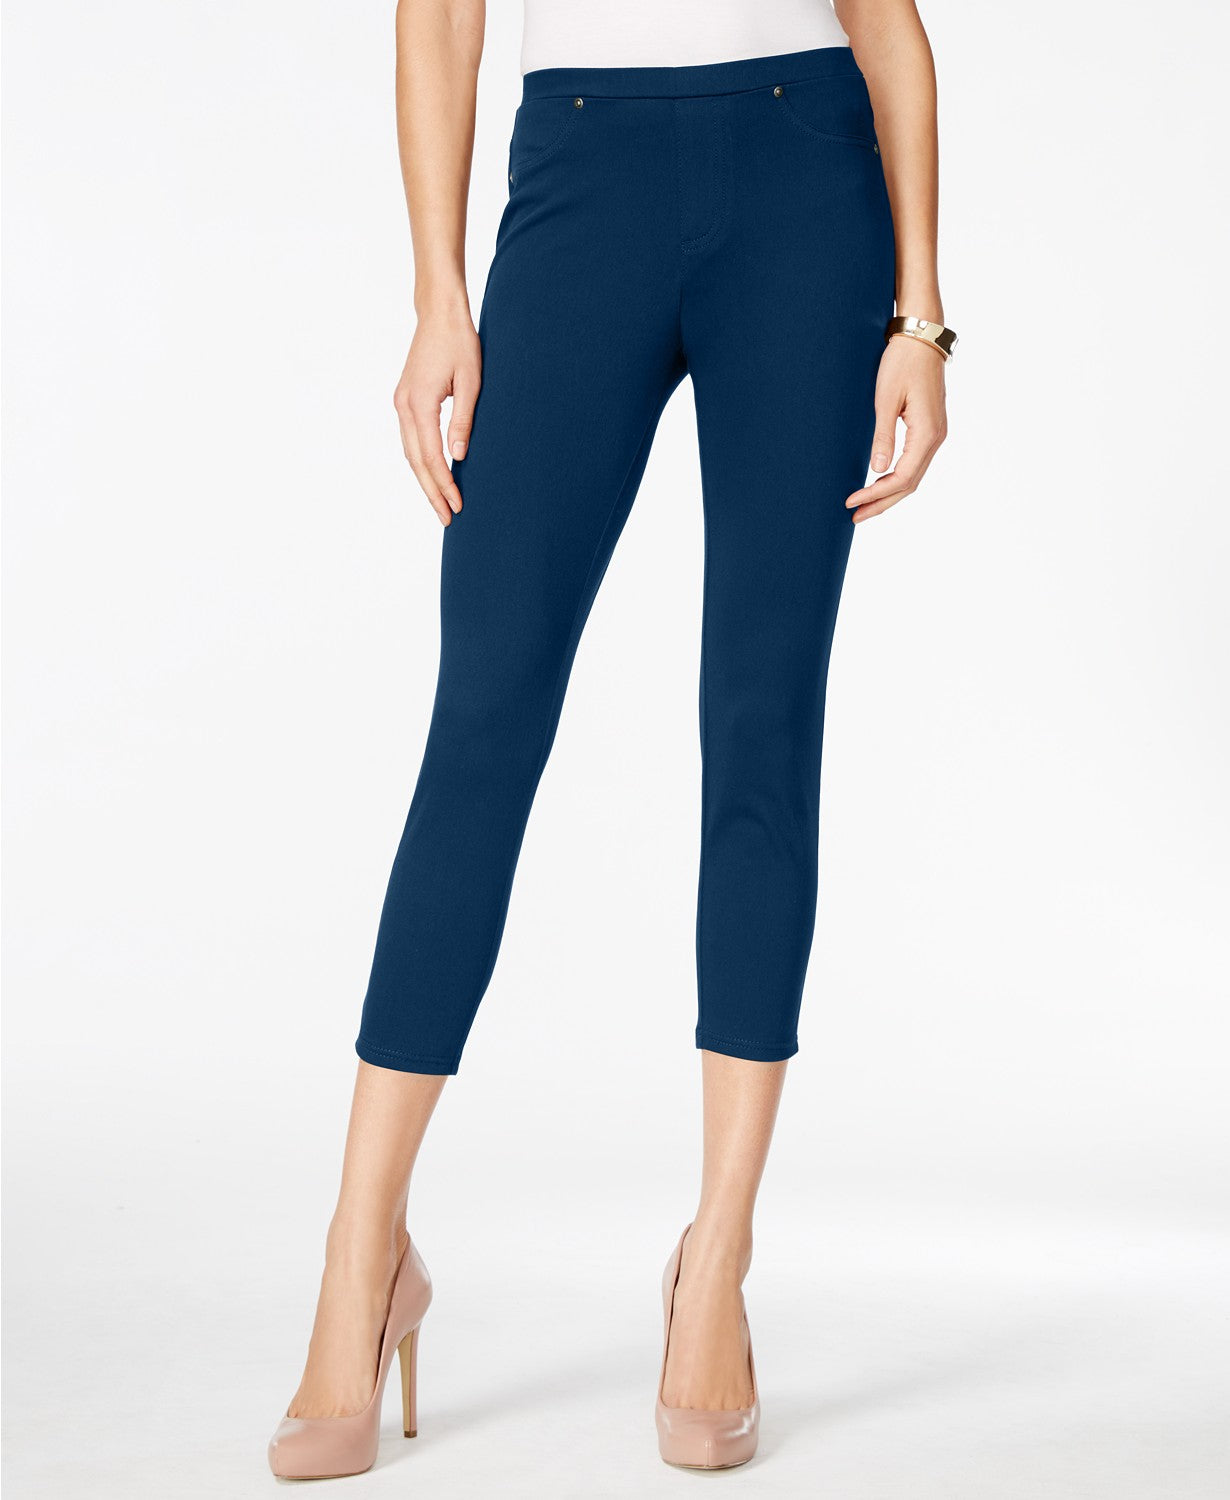 Style & Co Petite Pull-on Capri Pants